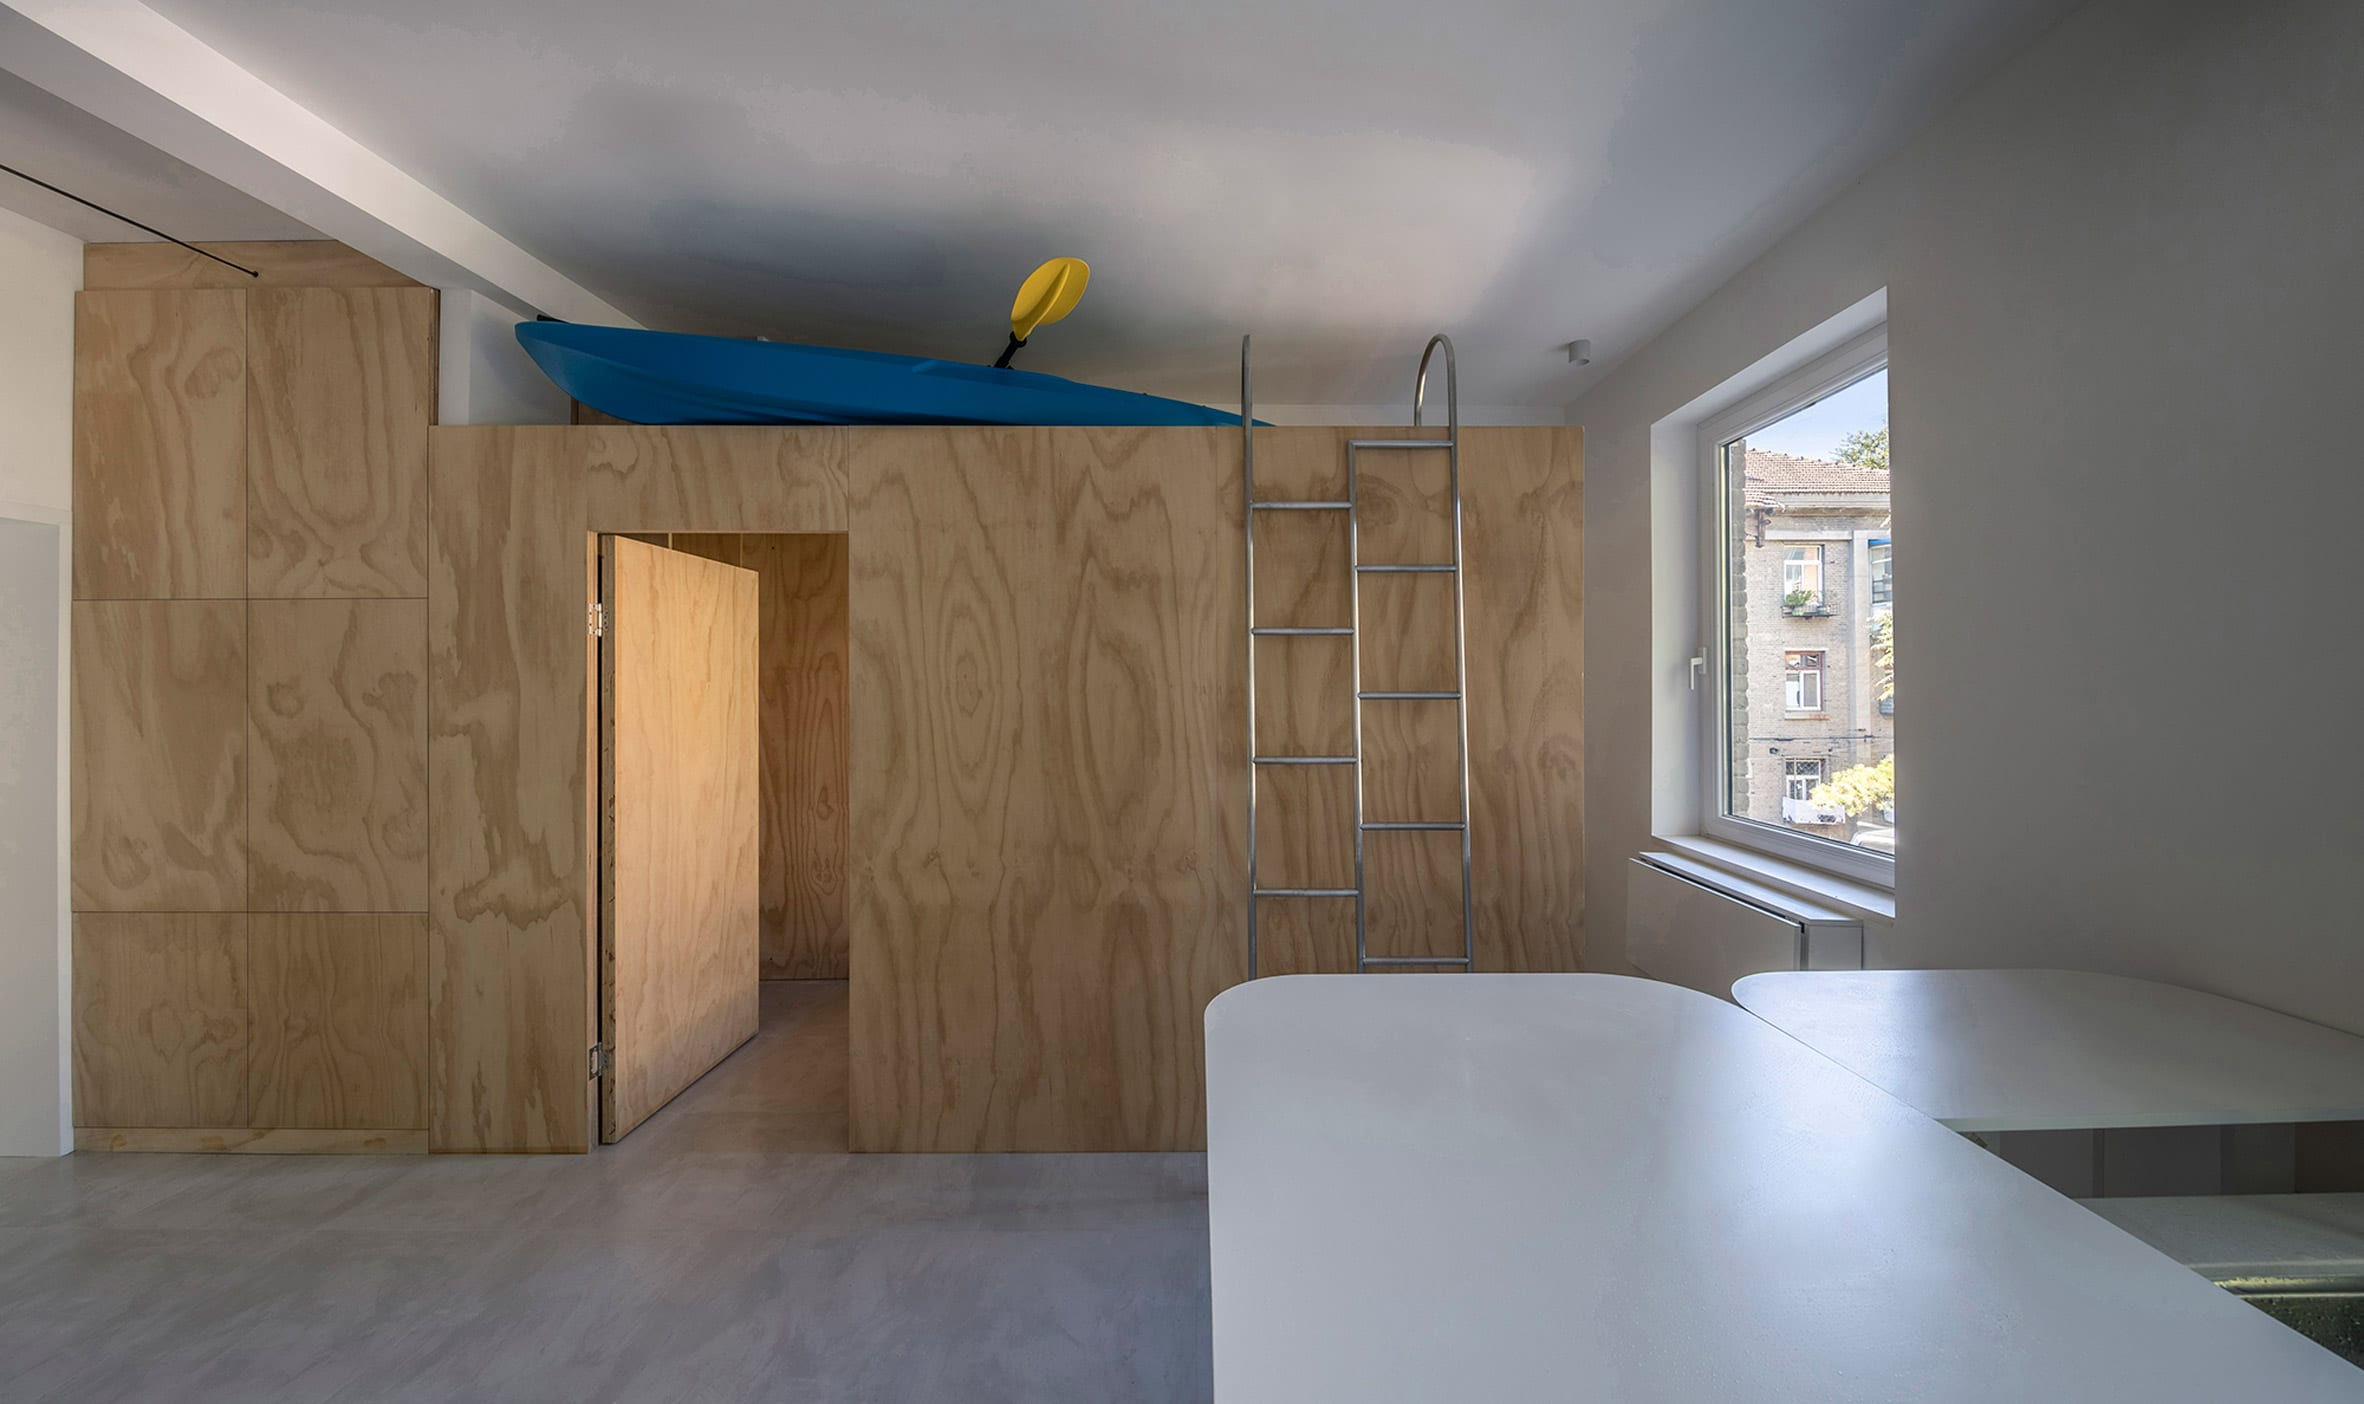 Modular plywood storage unit in apartment interior by Rooi